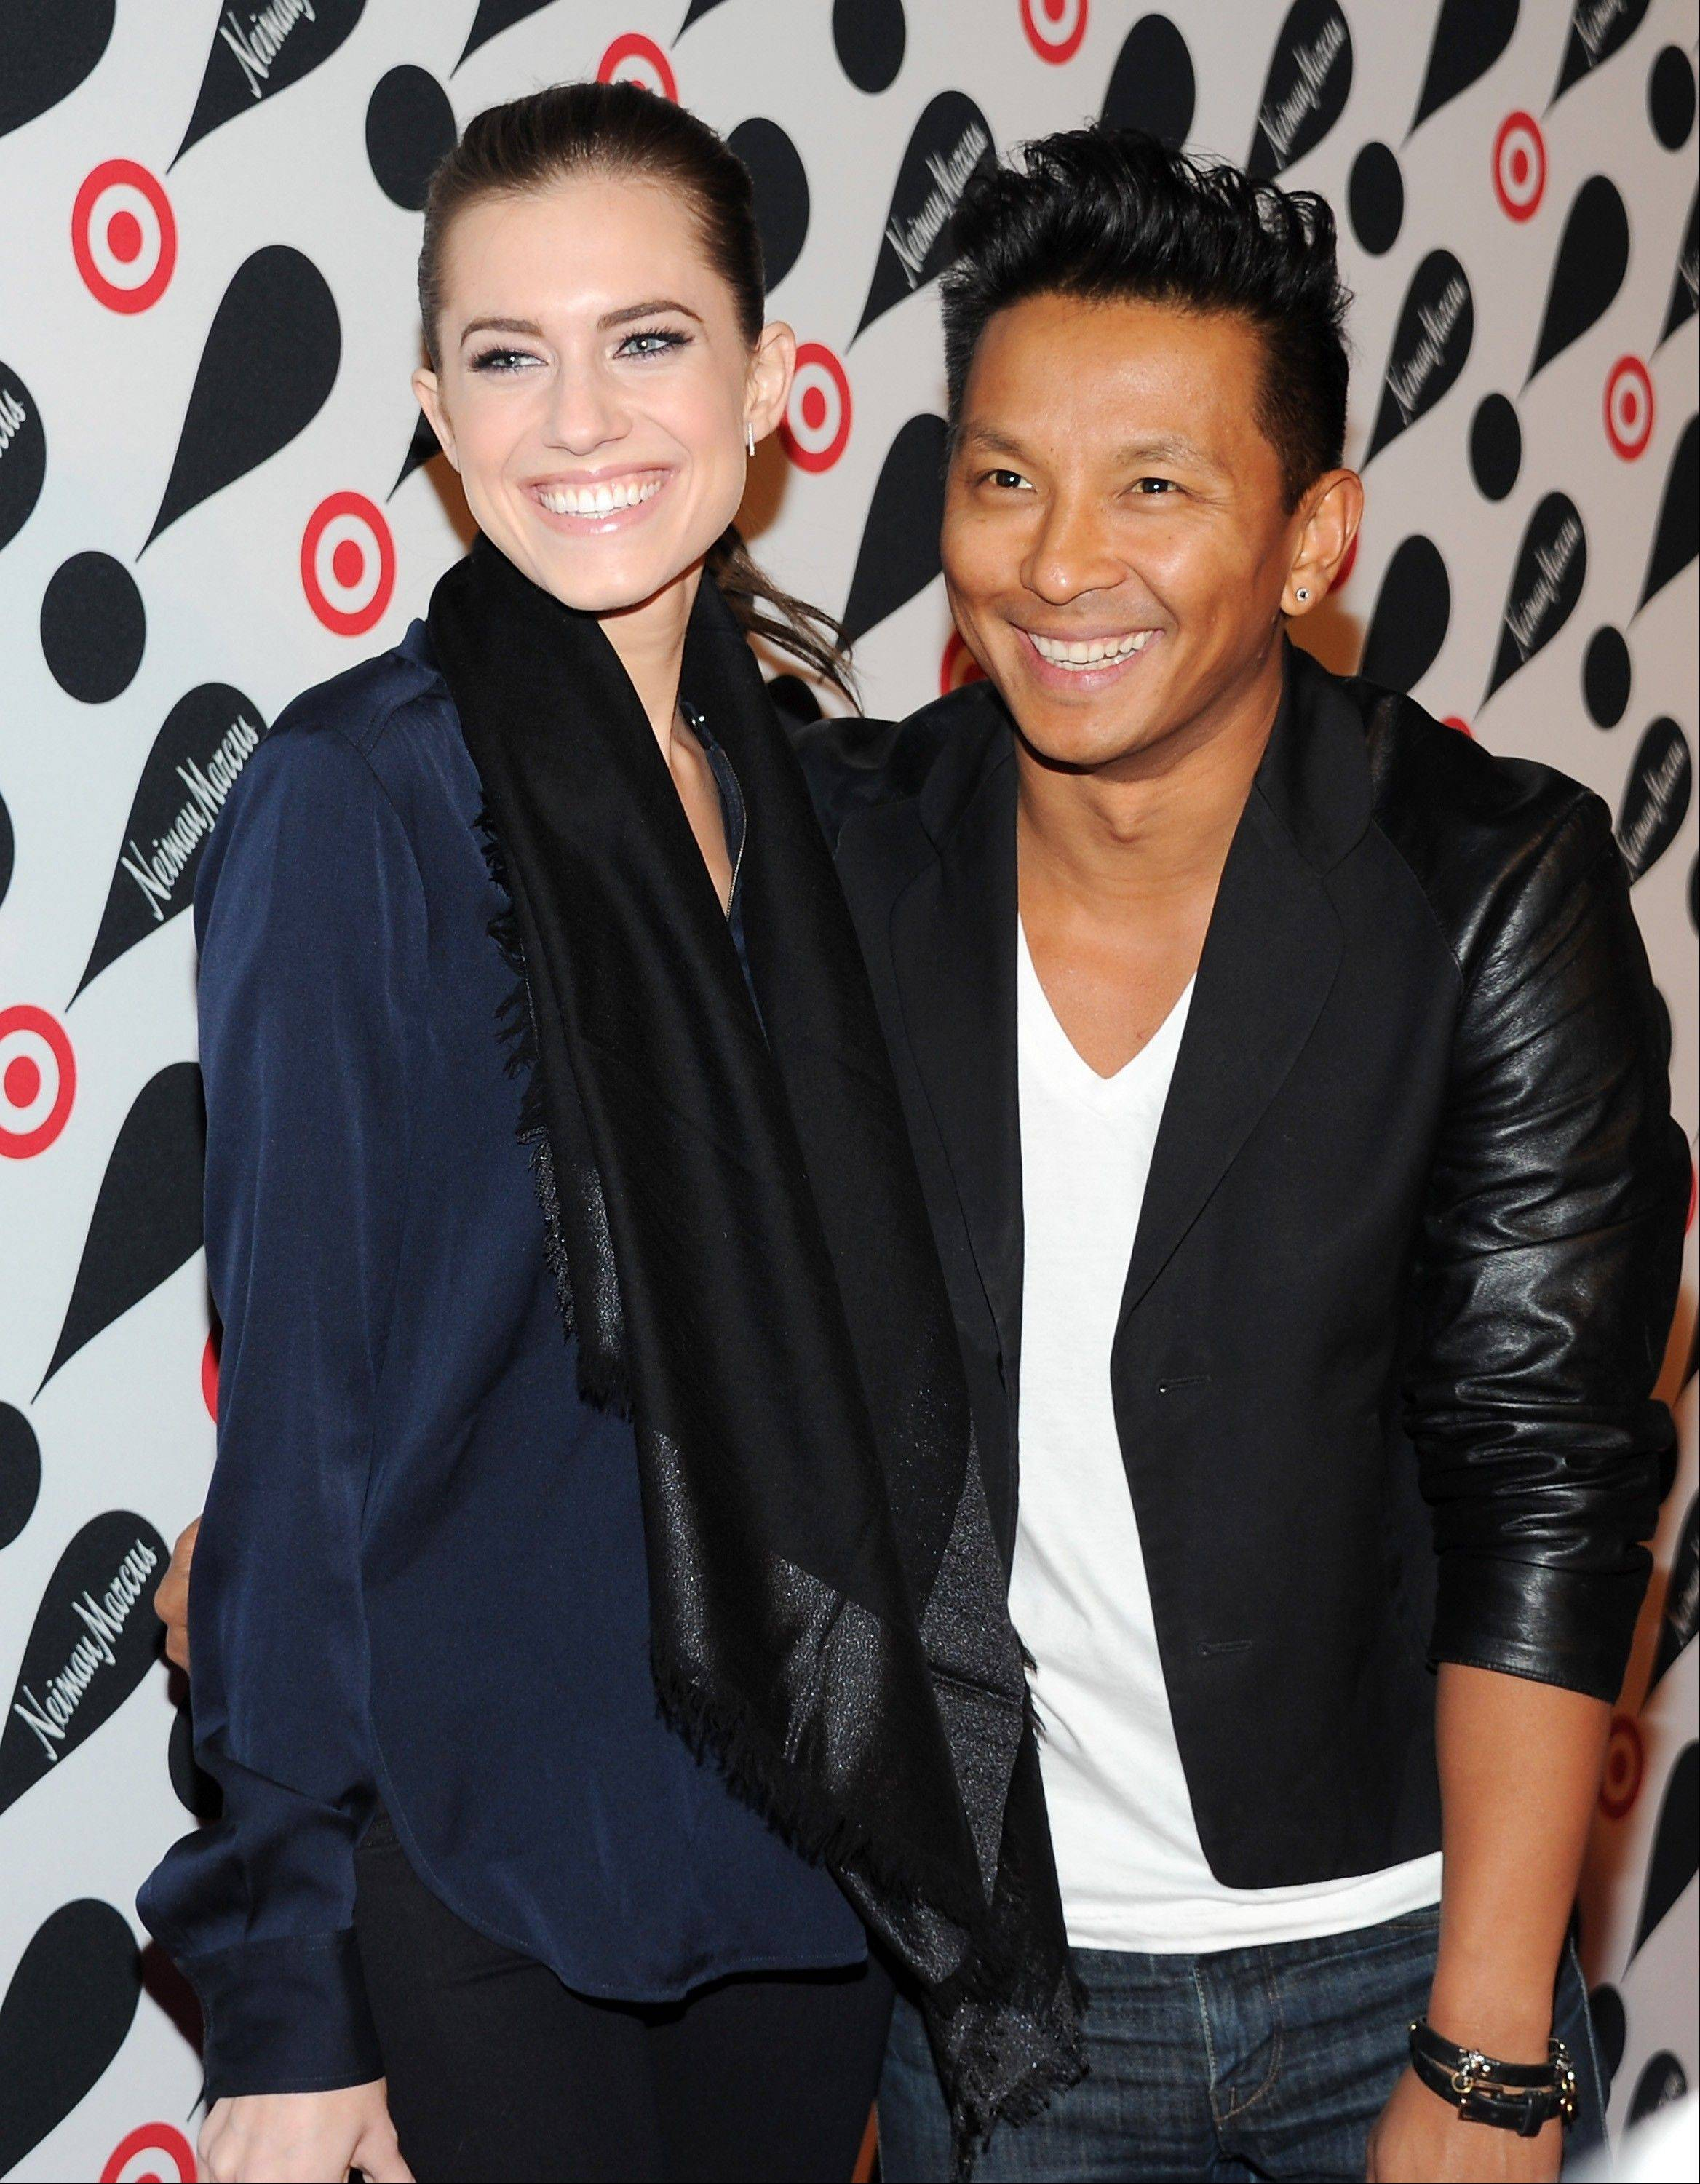 Actress Allison Williams and designer Prabal Gurung attend the Target and Neiman Marcus holiday collection launch in New York.